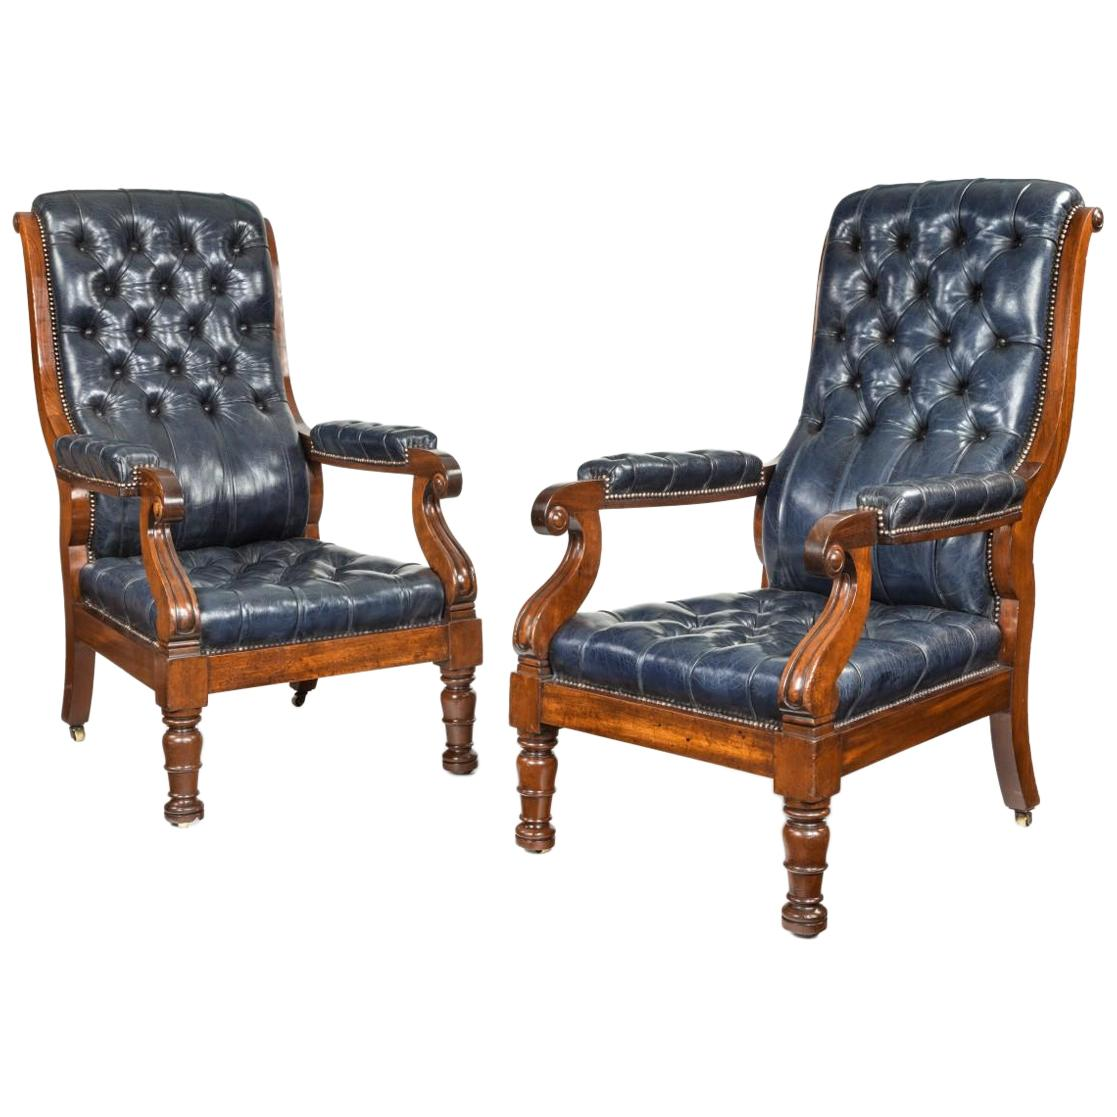 Pair of William IV Mahogany and Leather Upholstered Armchairs